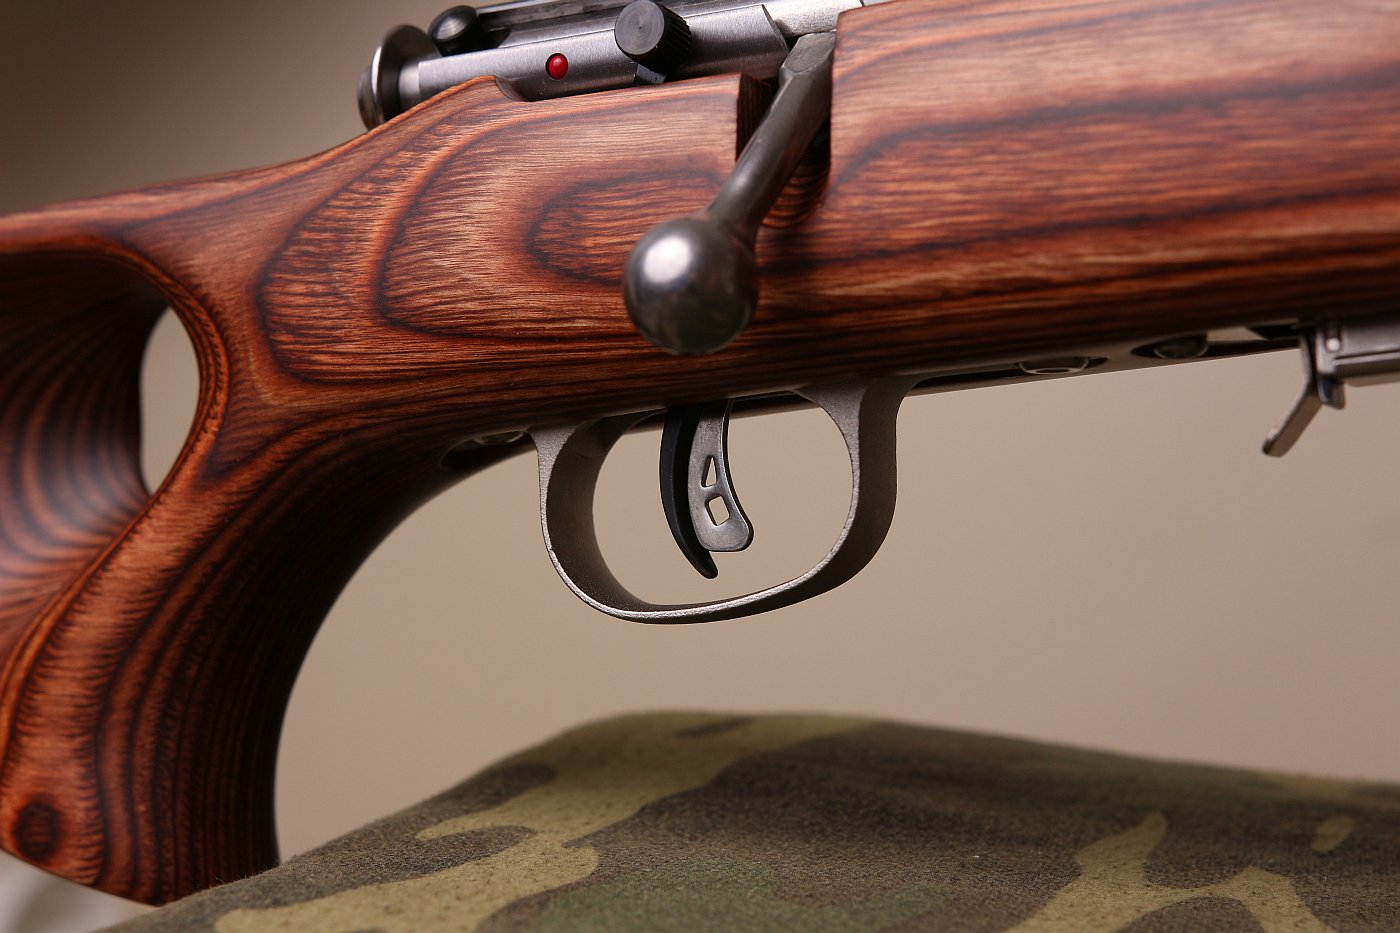 Savage 93R17 Review | The Hunting Gear Guy